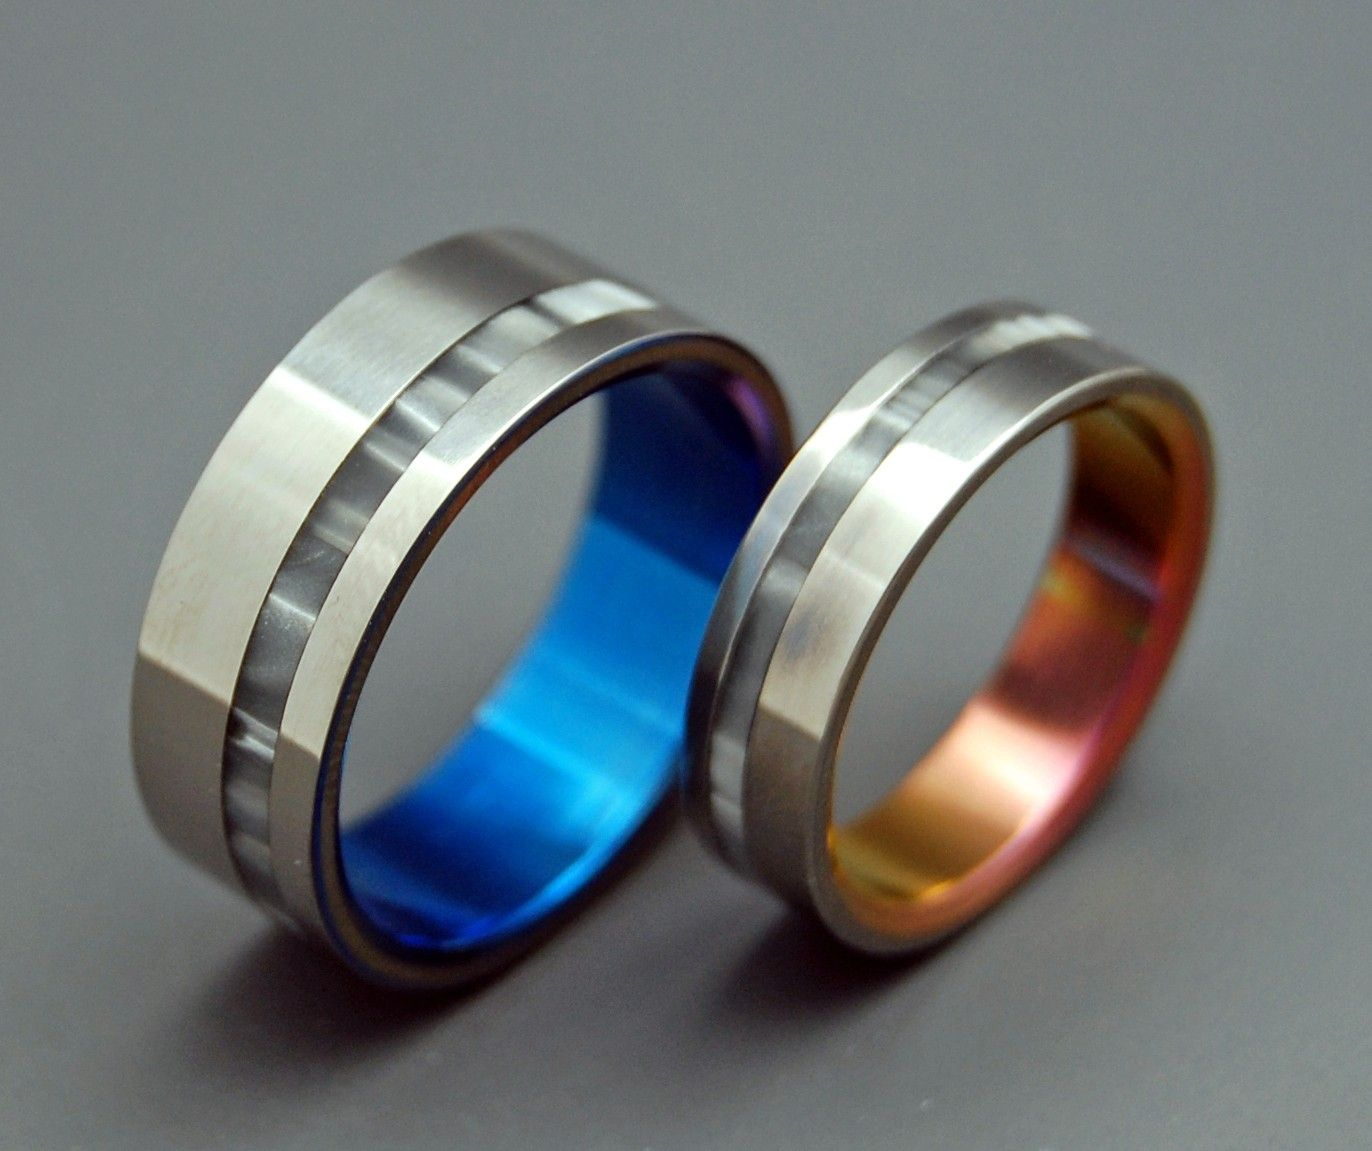 engagement when you entered the room ii 40000 via etsy portal rings lol could - Gamer Wedding Rings